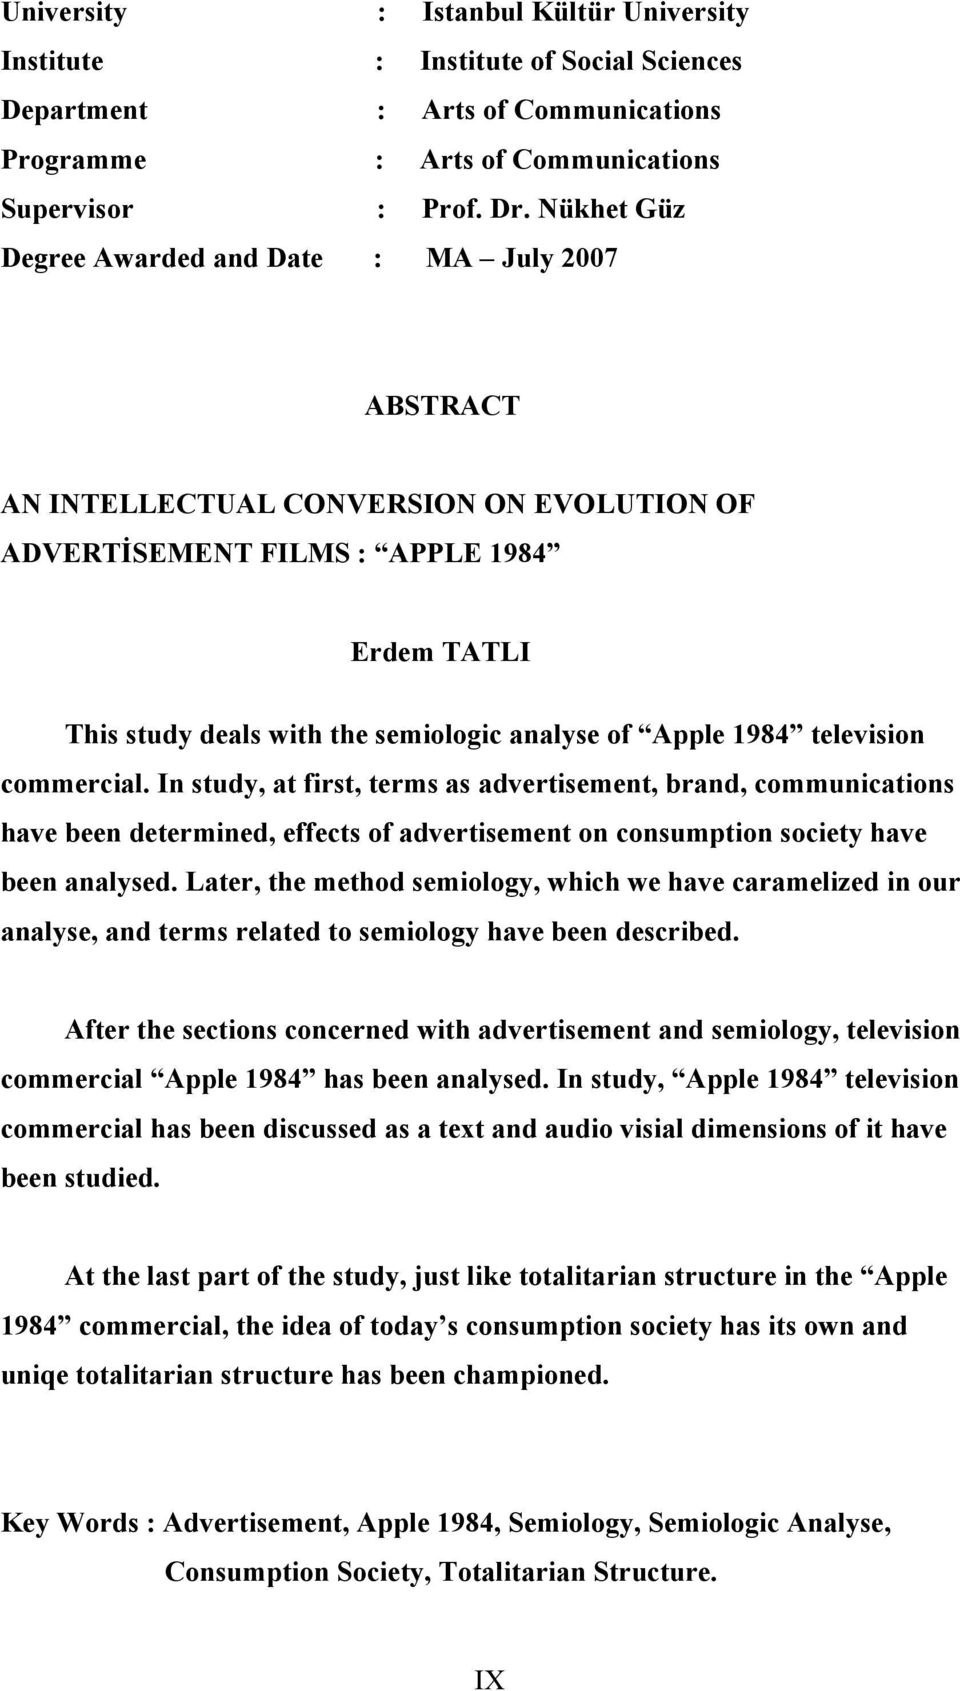 Apple 1984 television commercial. In study, at first, terms as advertisement, brand, communications have been determined, effects of advertisement on consumption society have been analysed.